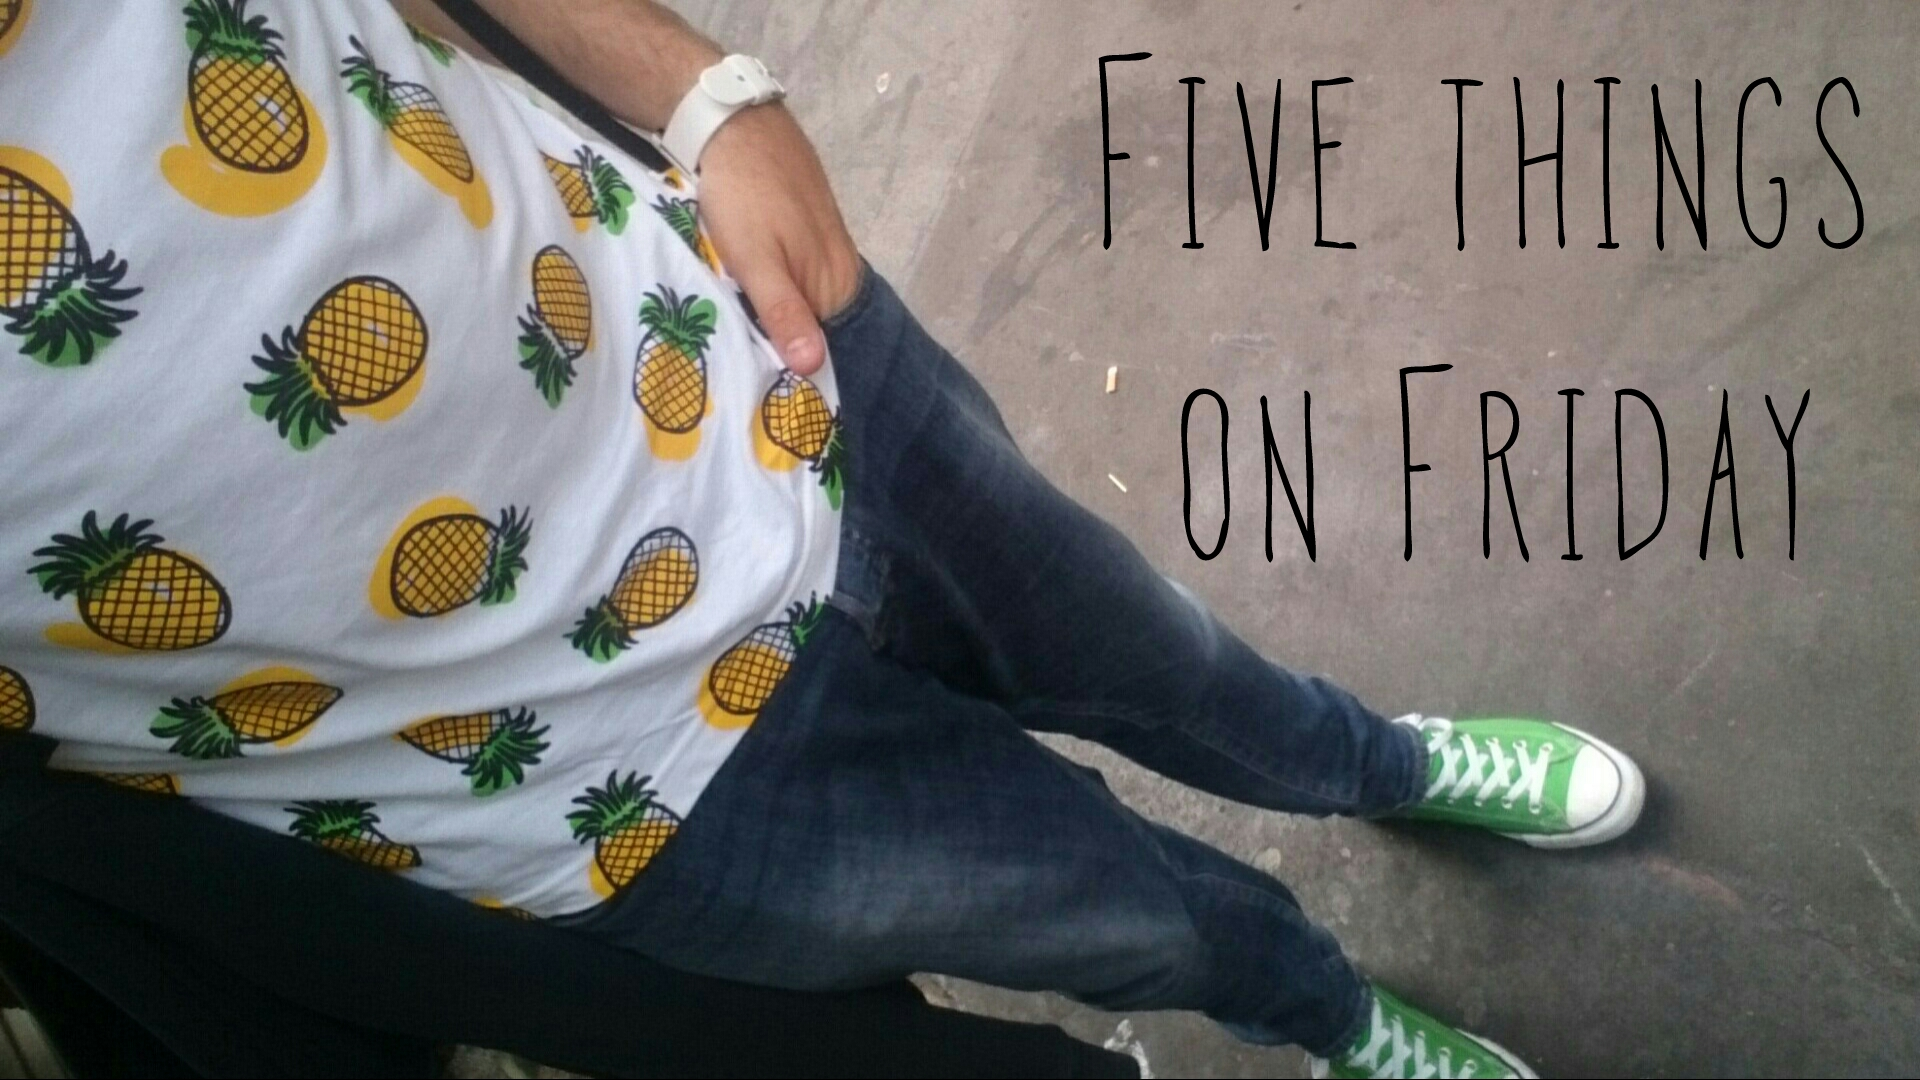 Five things on Friday #97